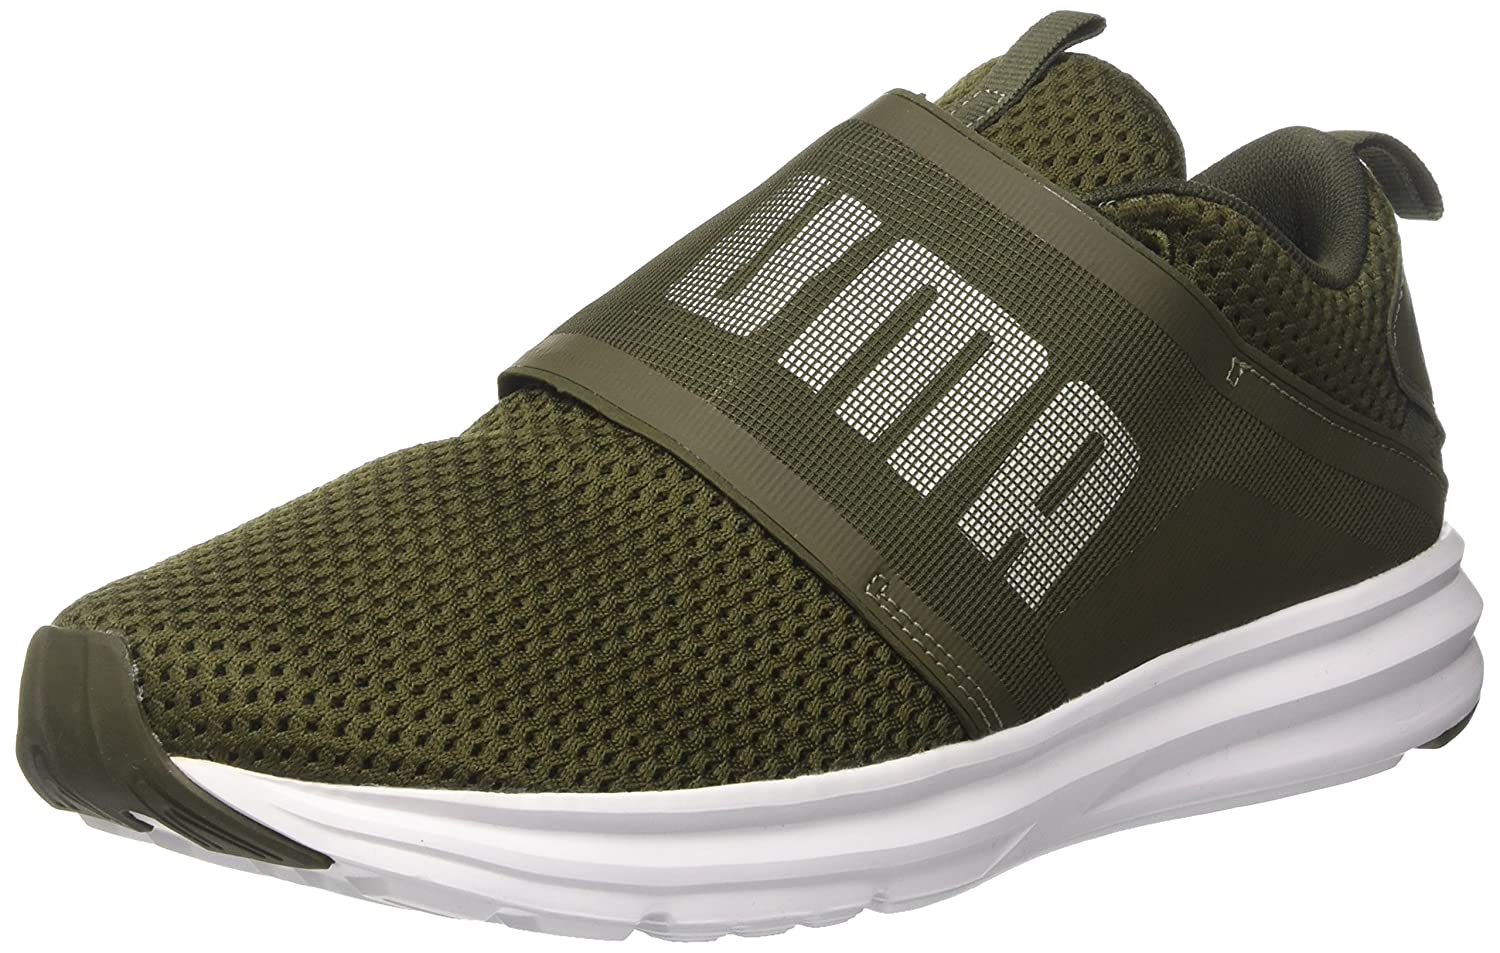 12d43fa72bcec0 Puma Men s Sneakers  Buy Online at Low Prices in India - Amazon.in